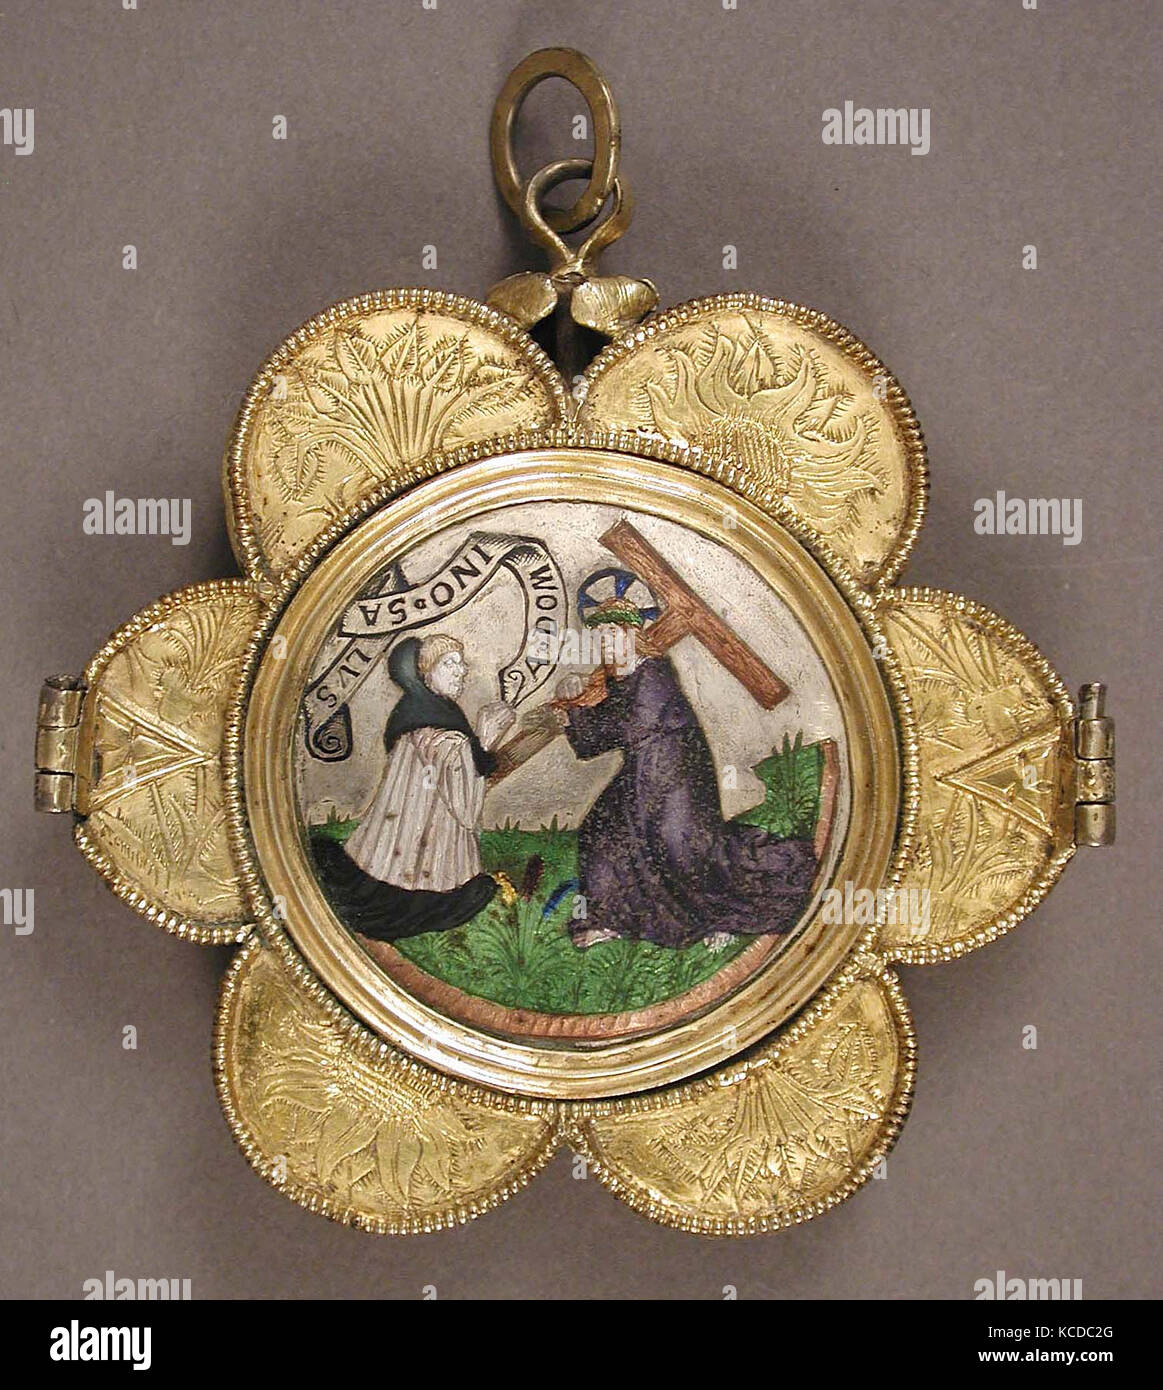 Reliquary pendant stock photos reliquary pendant stock images alamy reliquary pendant 15th century french basse taille enamel niello silver aloadofball Image collections